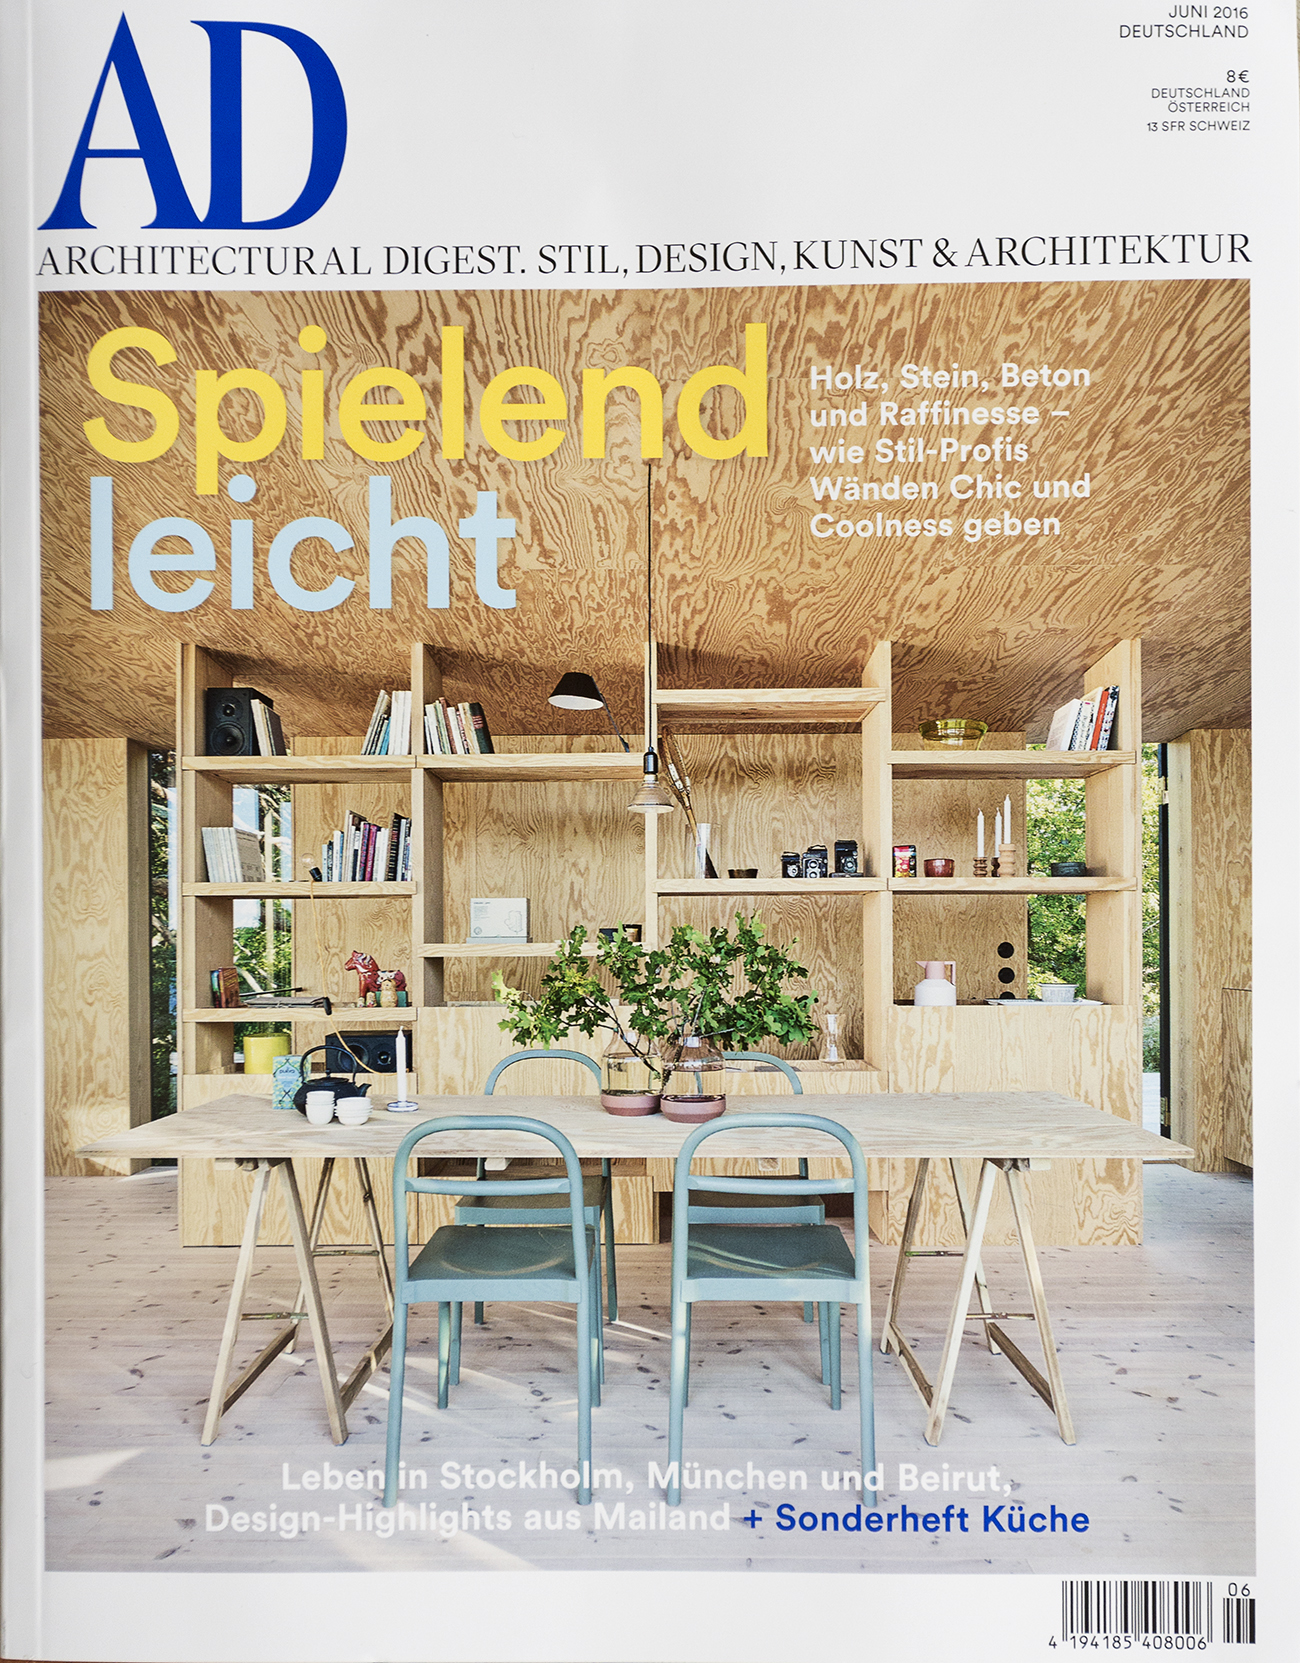 AD-Germany-architectural-digest-170-juin-2016